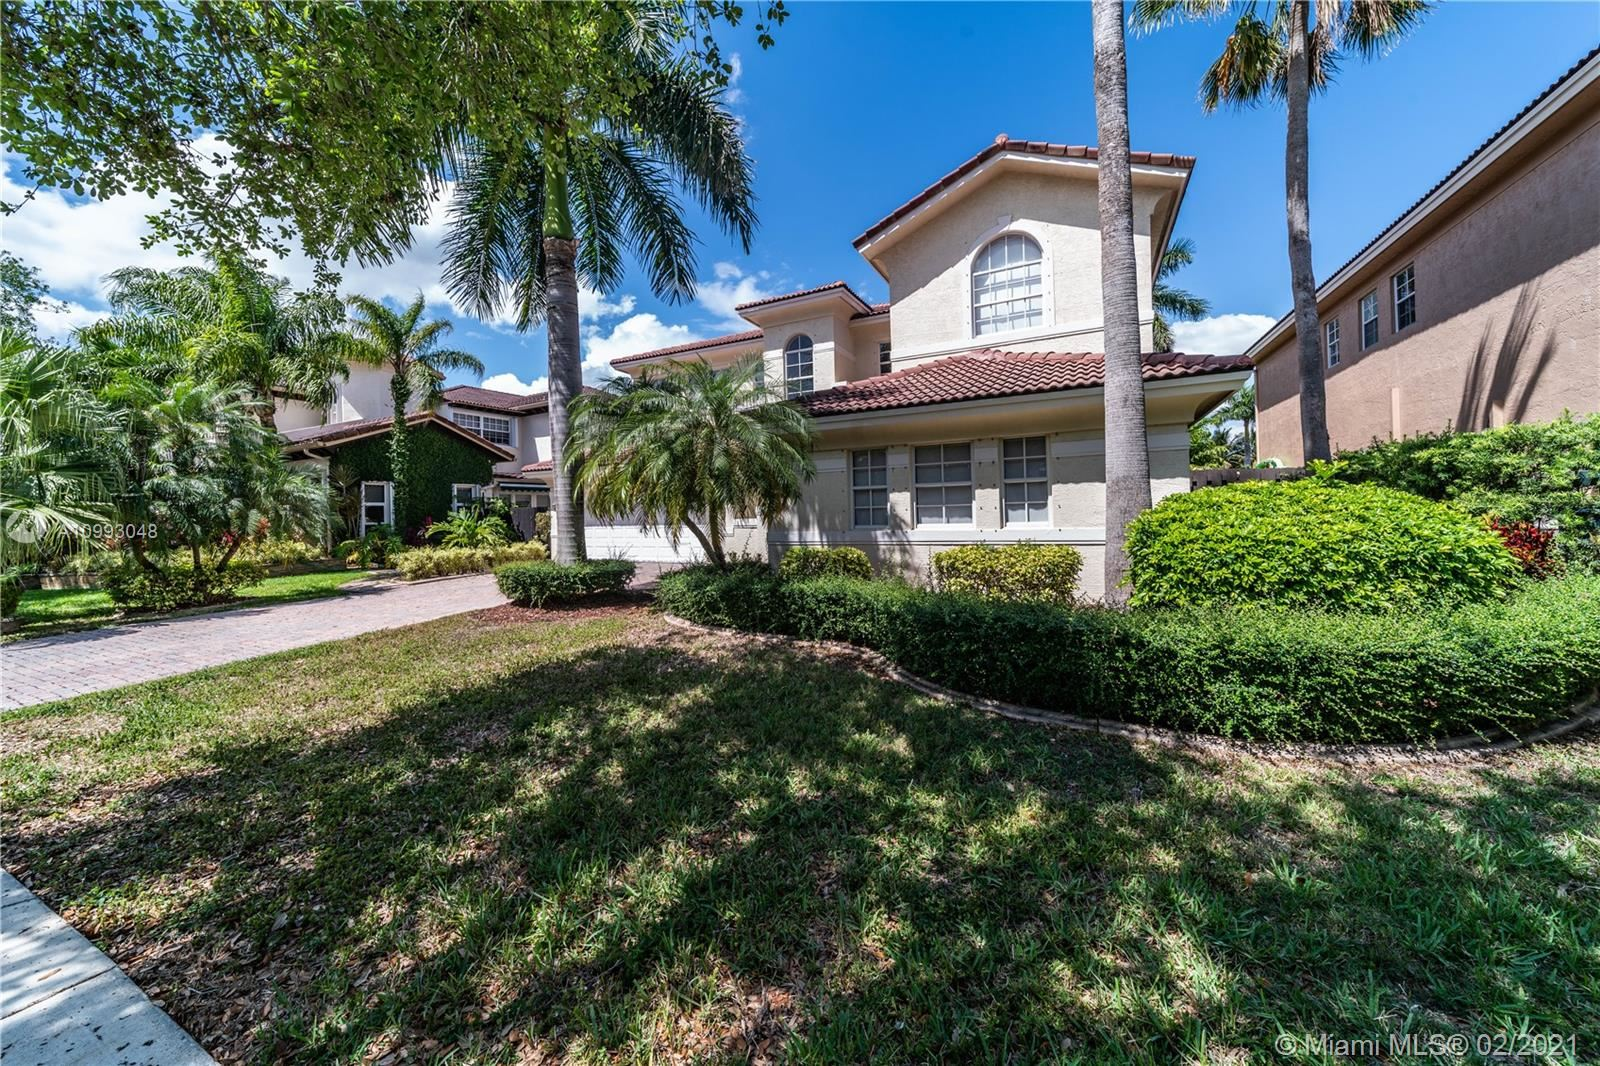 11213 NW 71st Ter, Doral, FL 33178 - #: A10993048